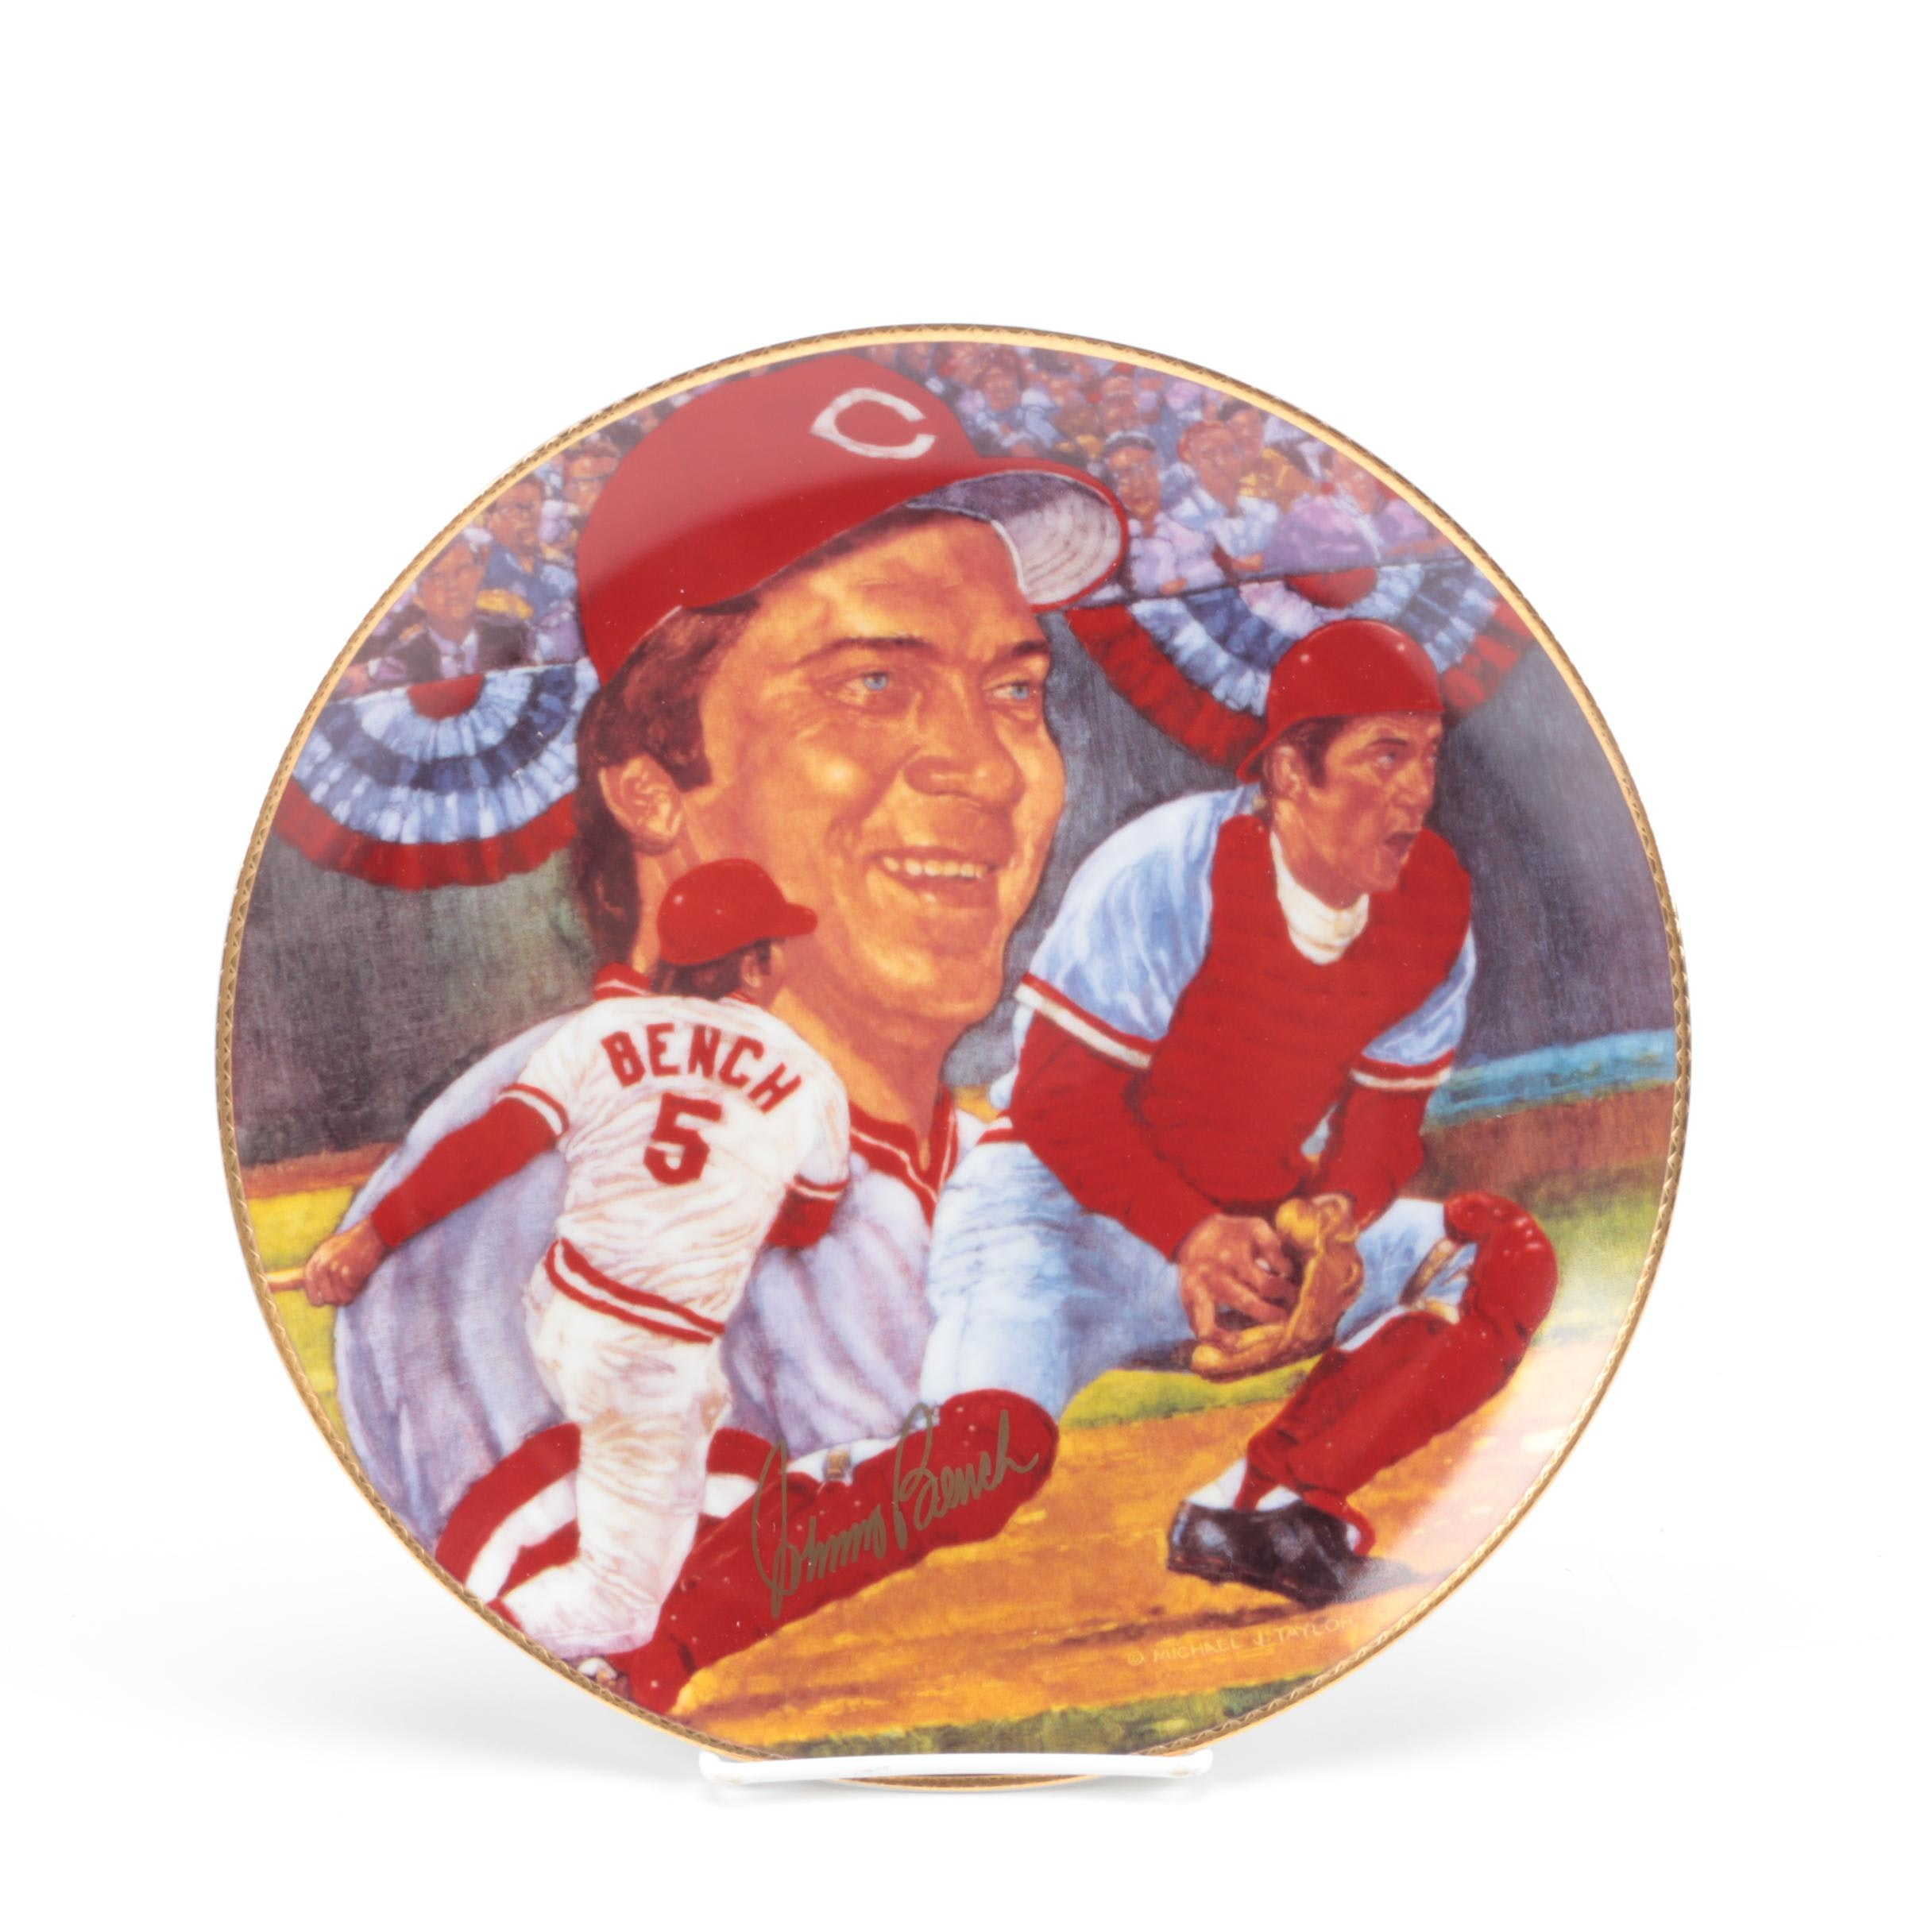 Johnny Bench Autographed Plate